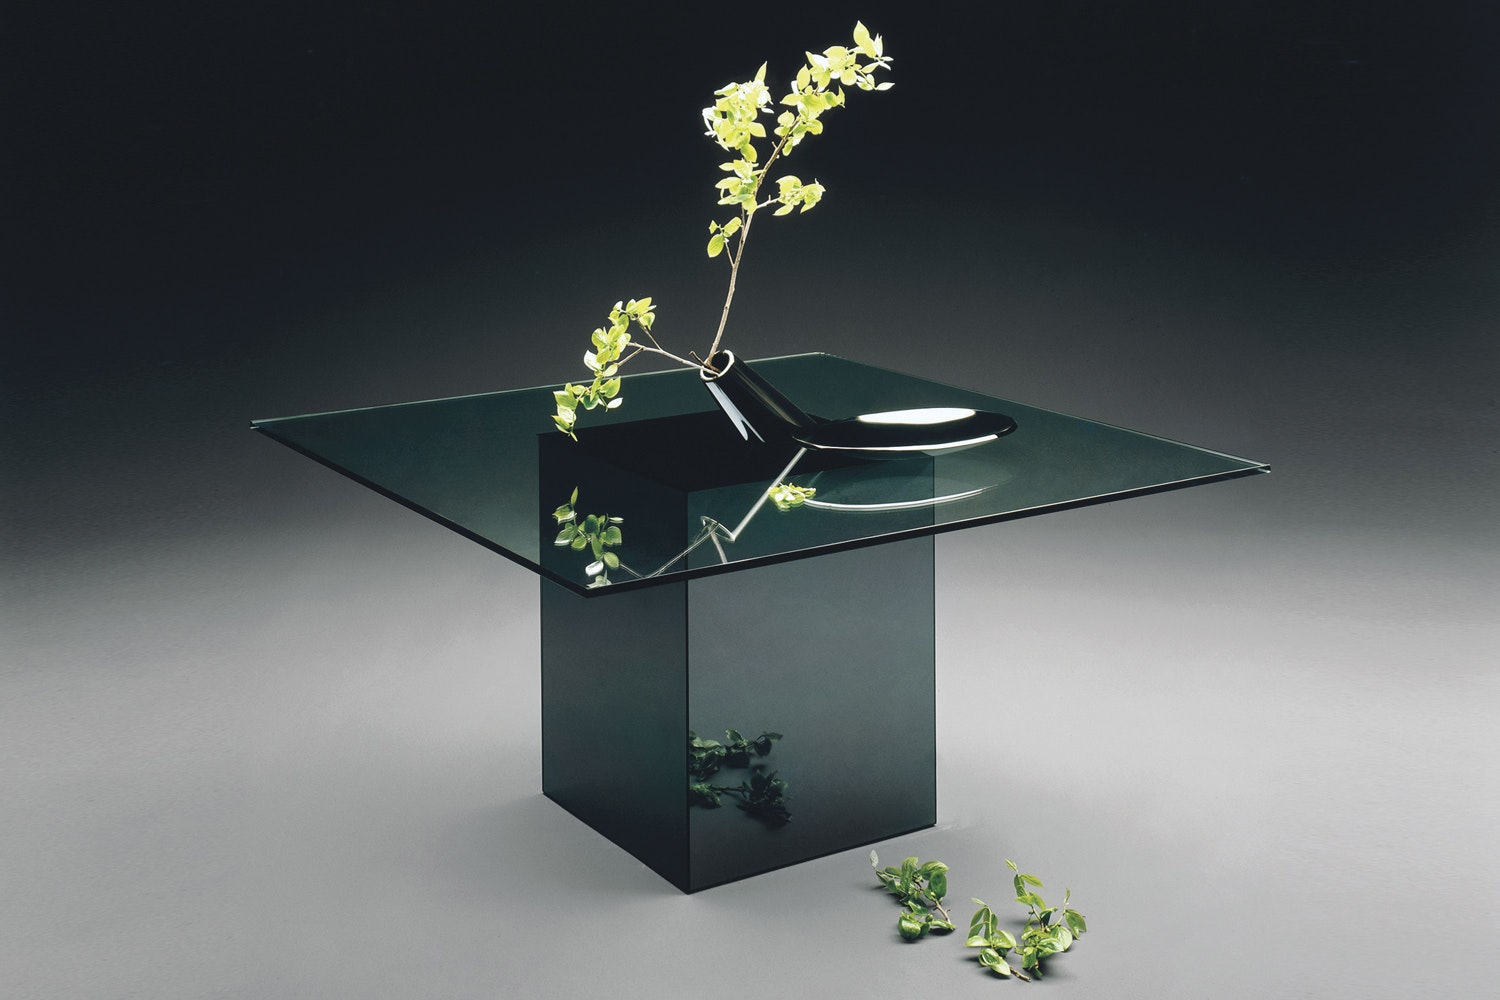 Blok Table by Nanda Vigo for Acerbis